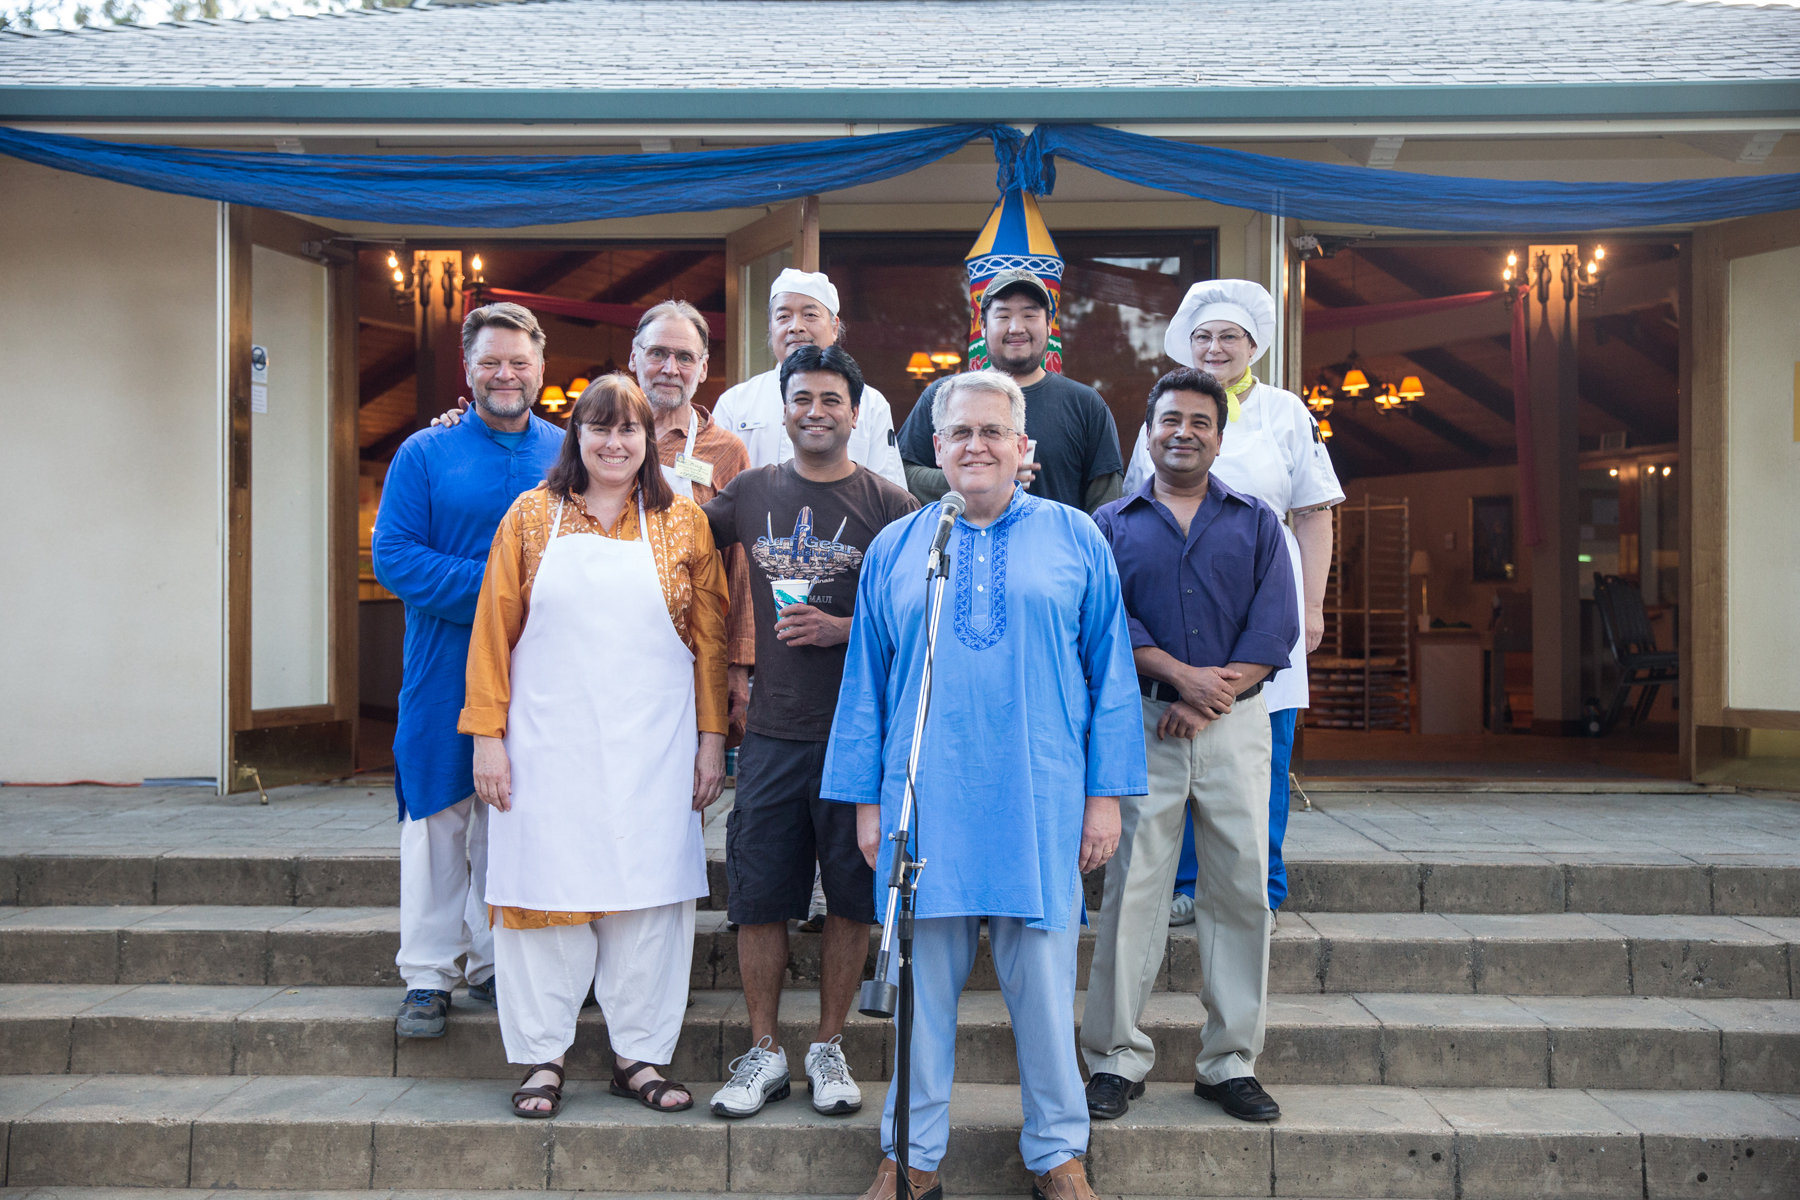 A small fraction of the volunteers that made SRW wonderful for everyone. These folks cooked that amazing Indian meal.